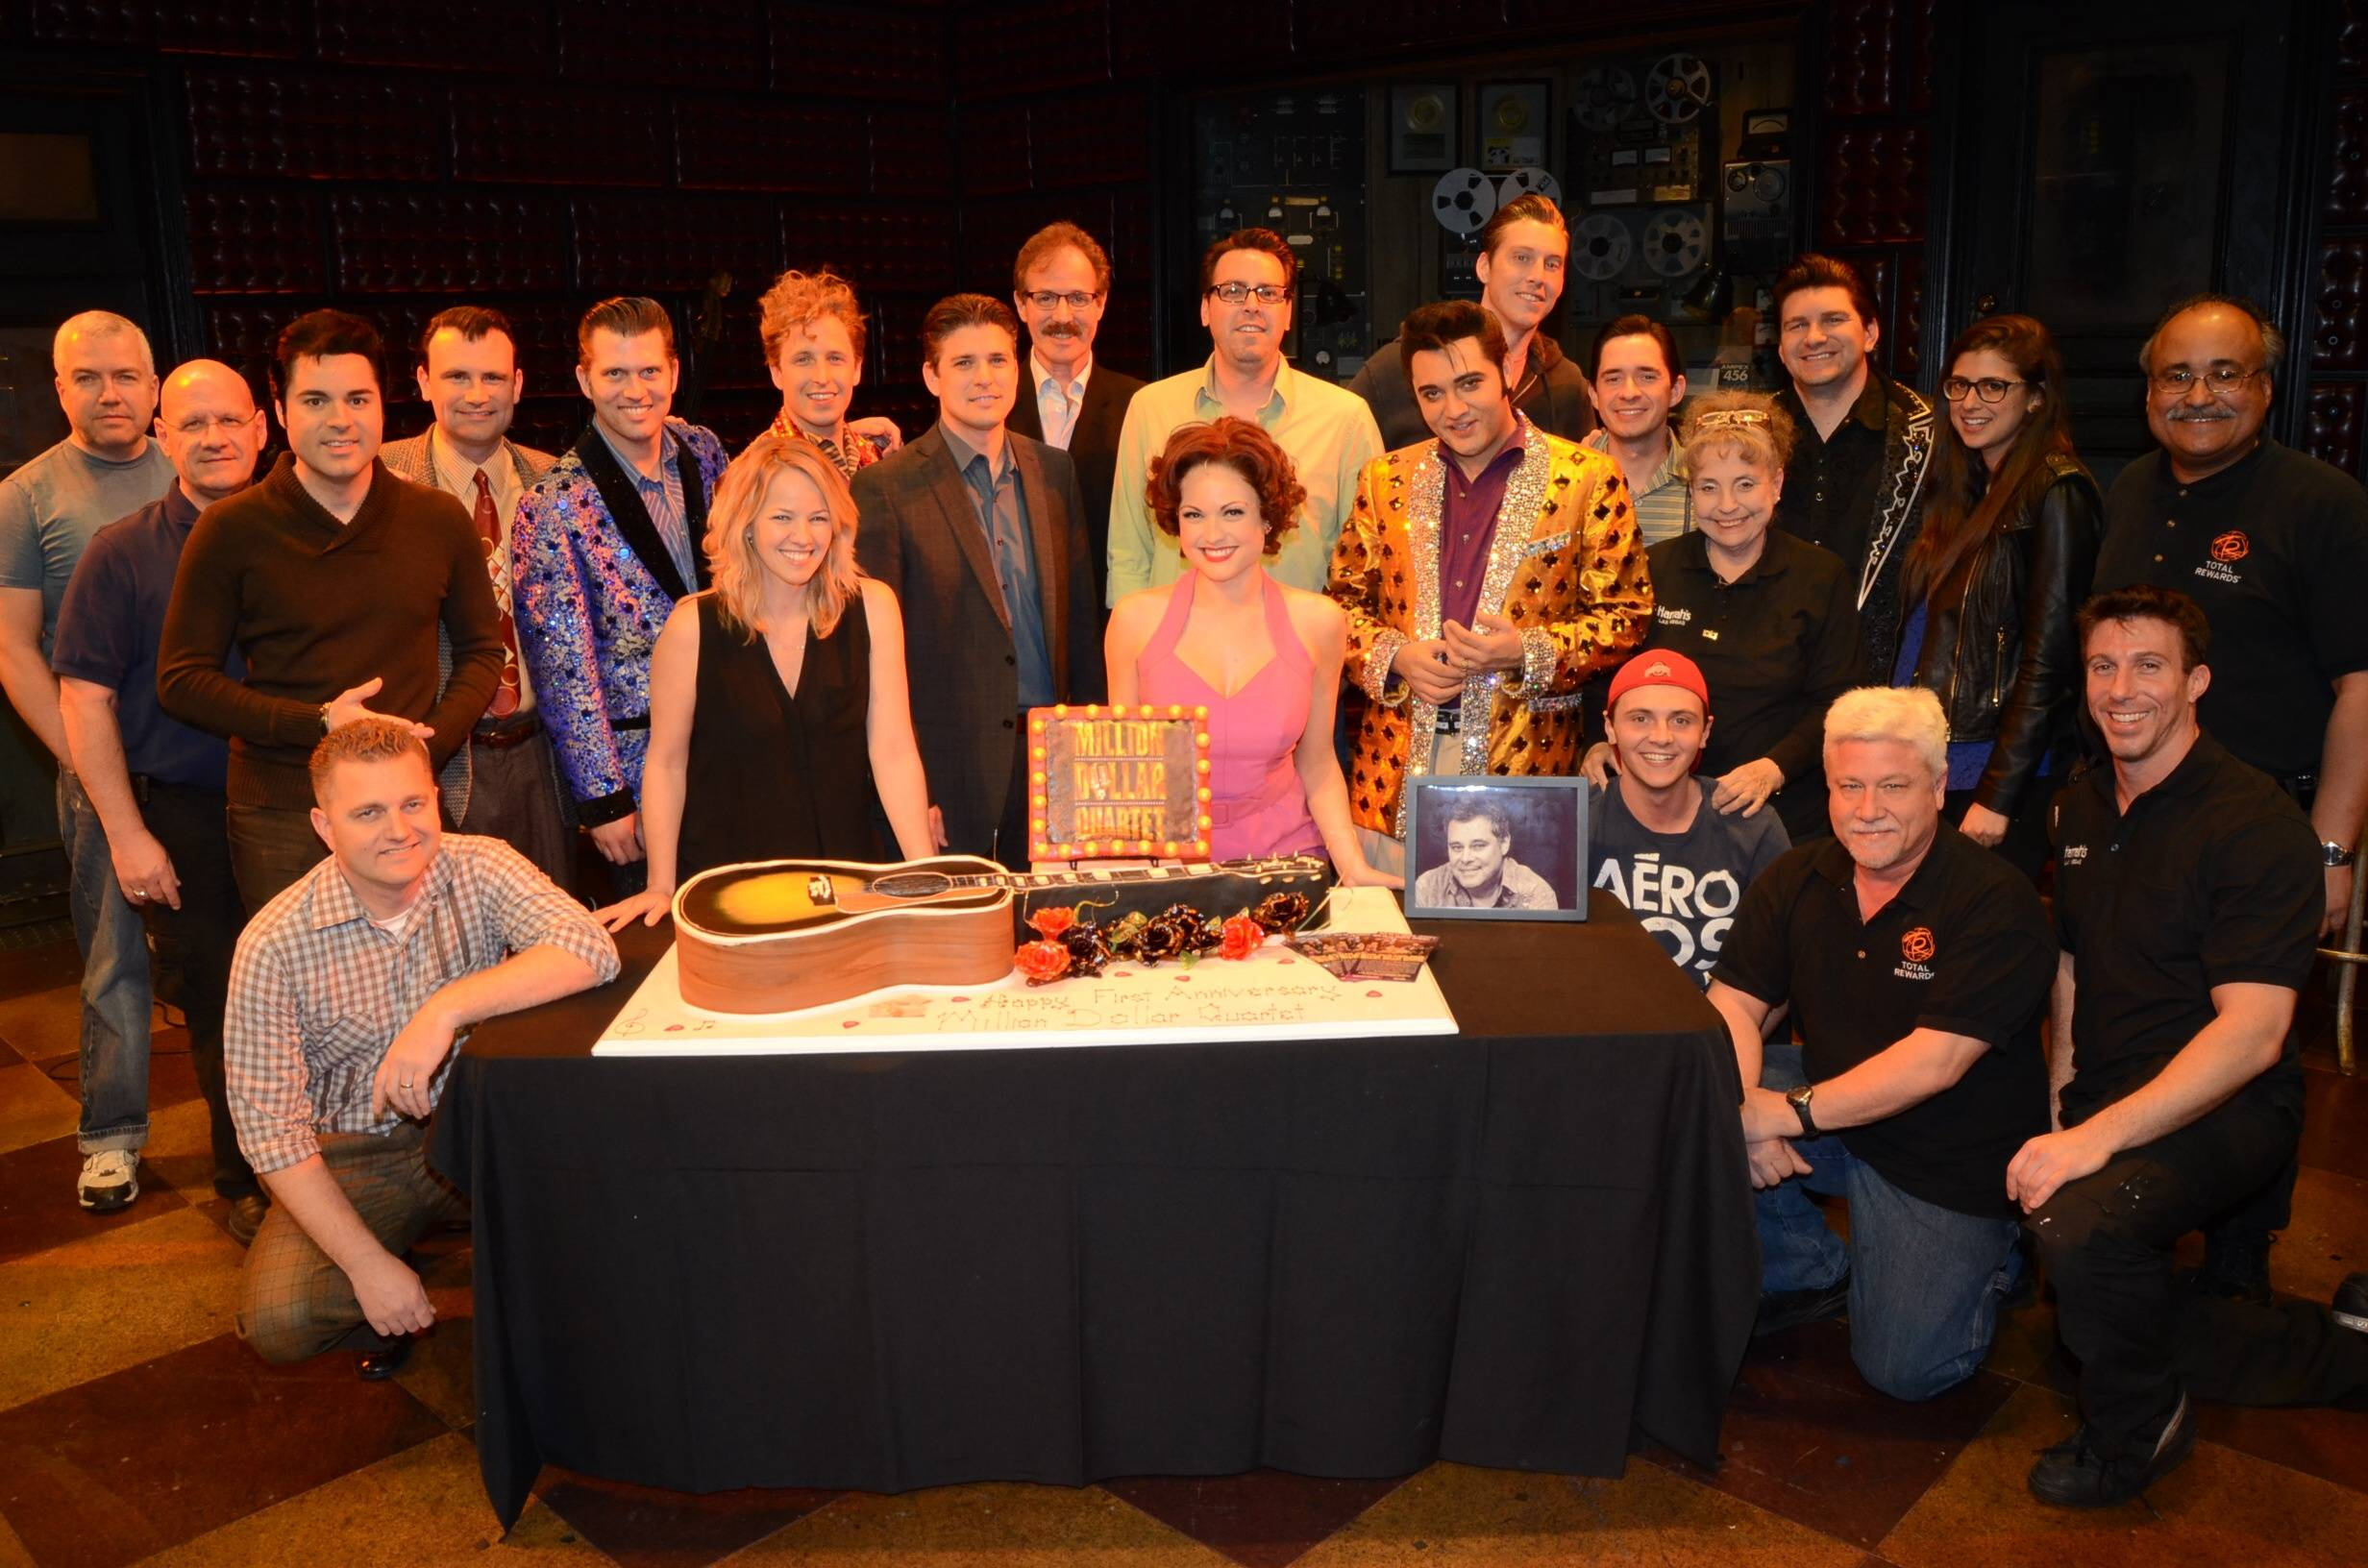 Full Million Dollar Quartet Las Vegas Company; First Anniversary 2.19.14 ©Caesars Entertainment